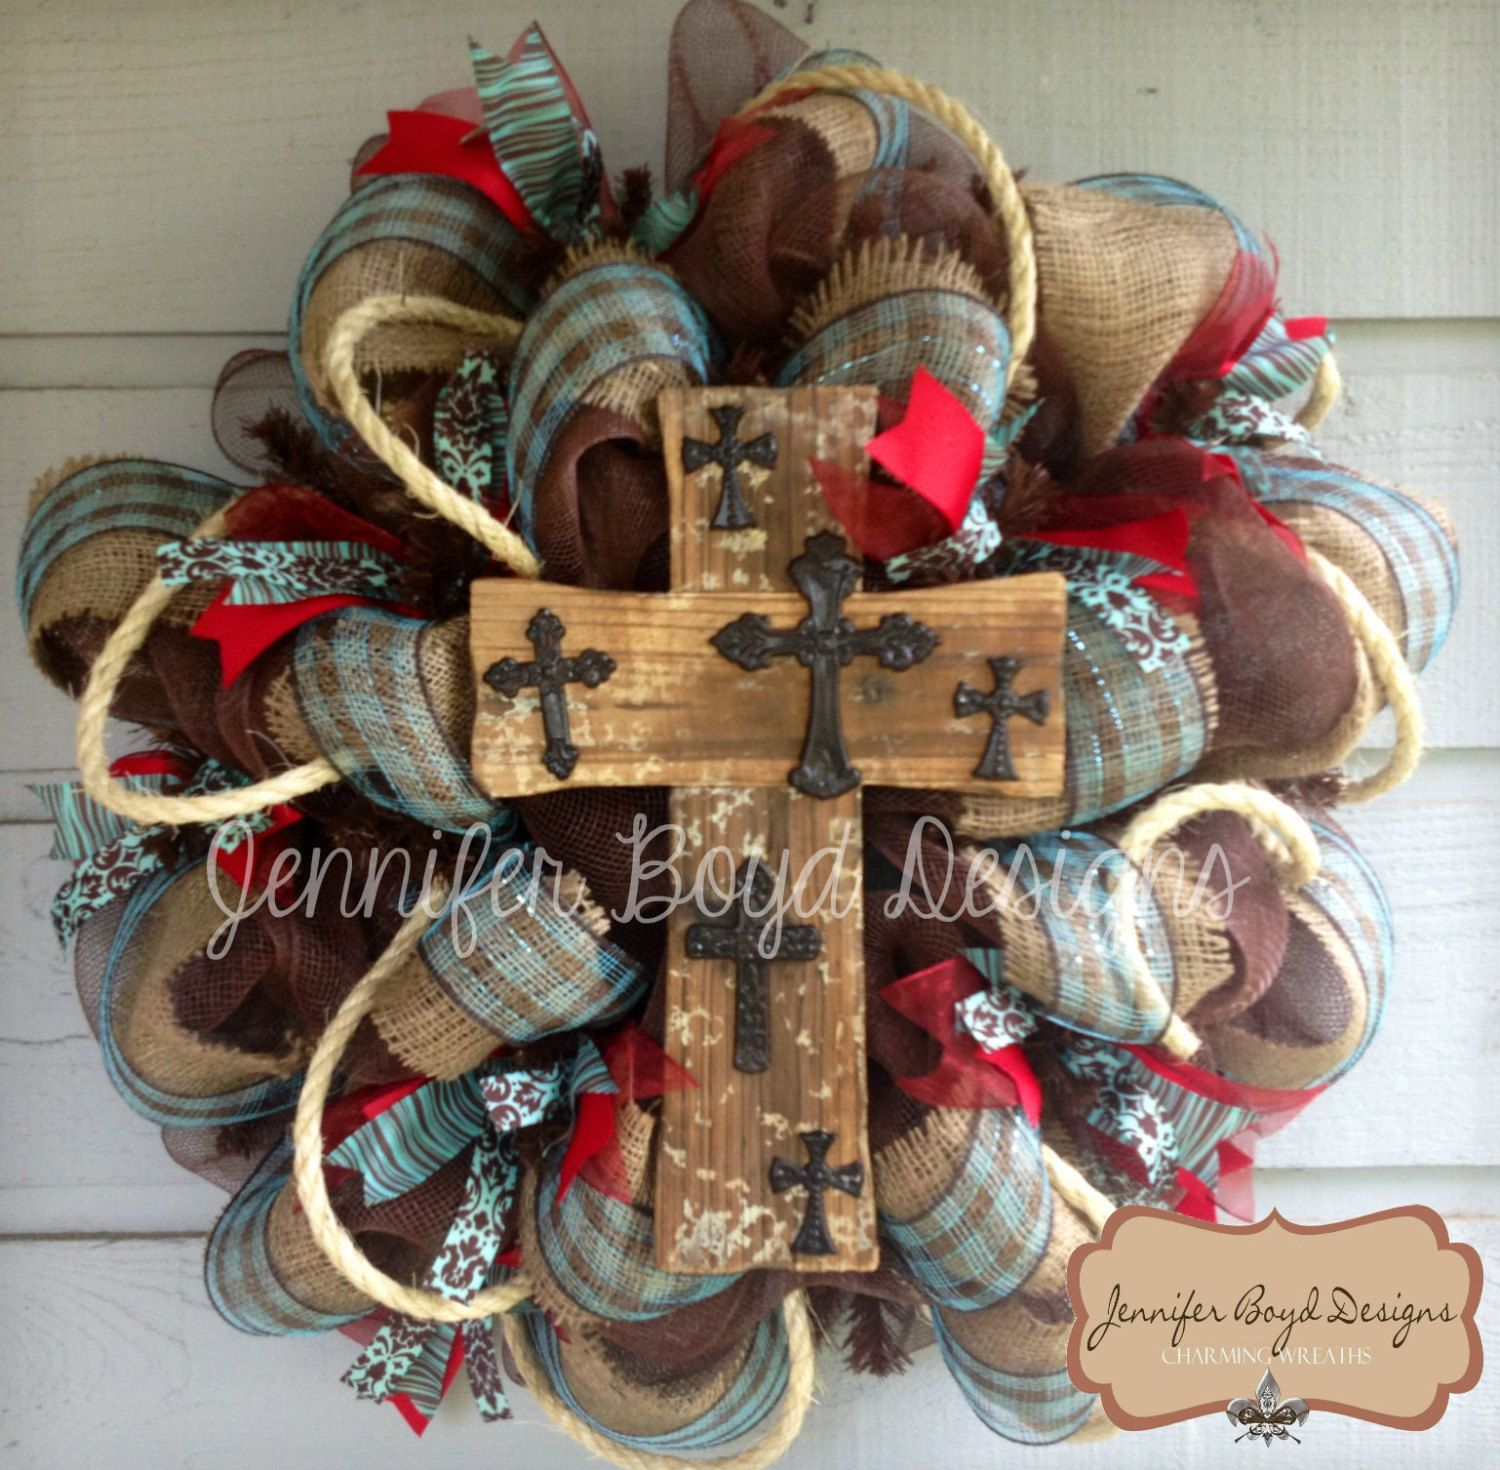 Red Turquoise Not Just For Holiday Decor: Western Rustic Red Turquoise And Burlap